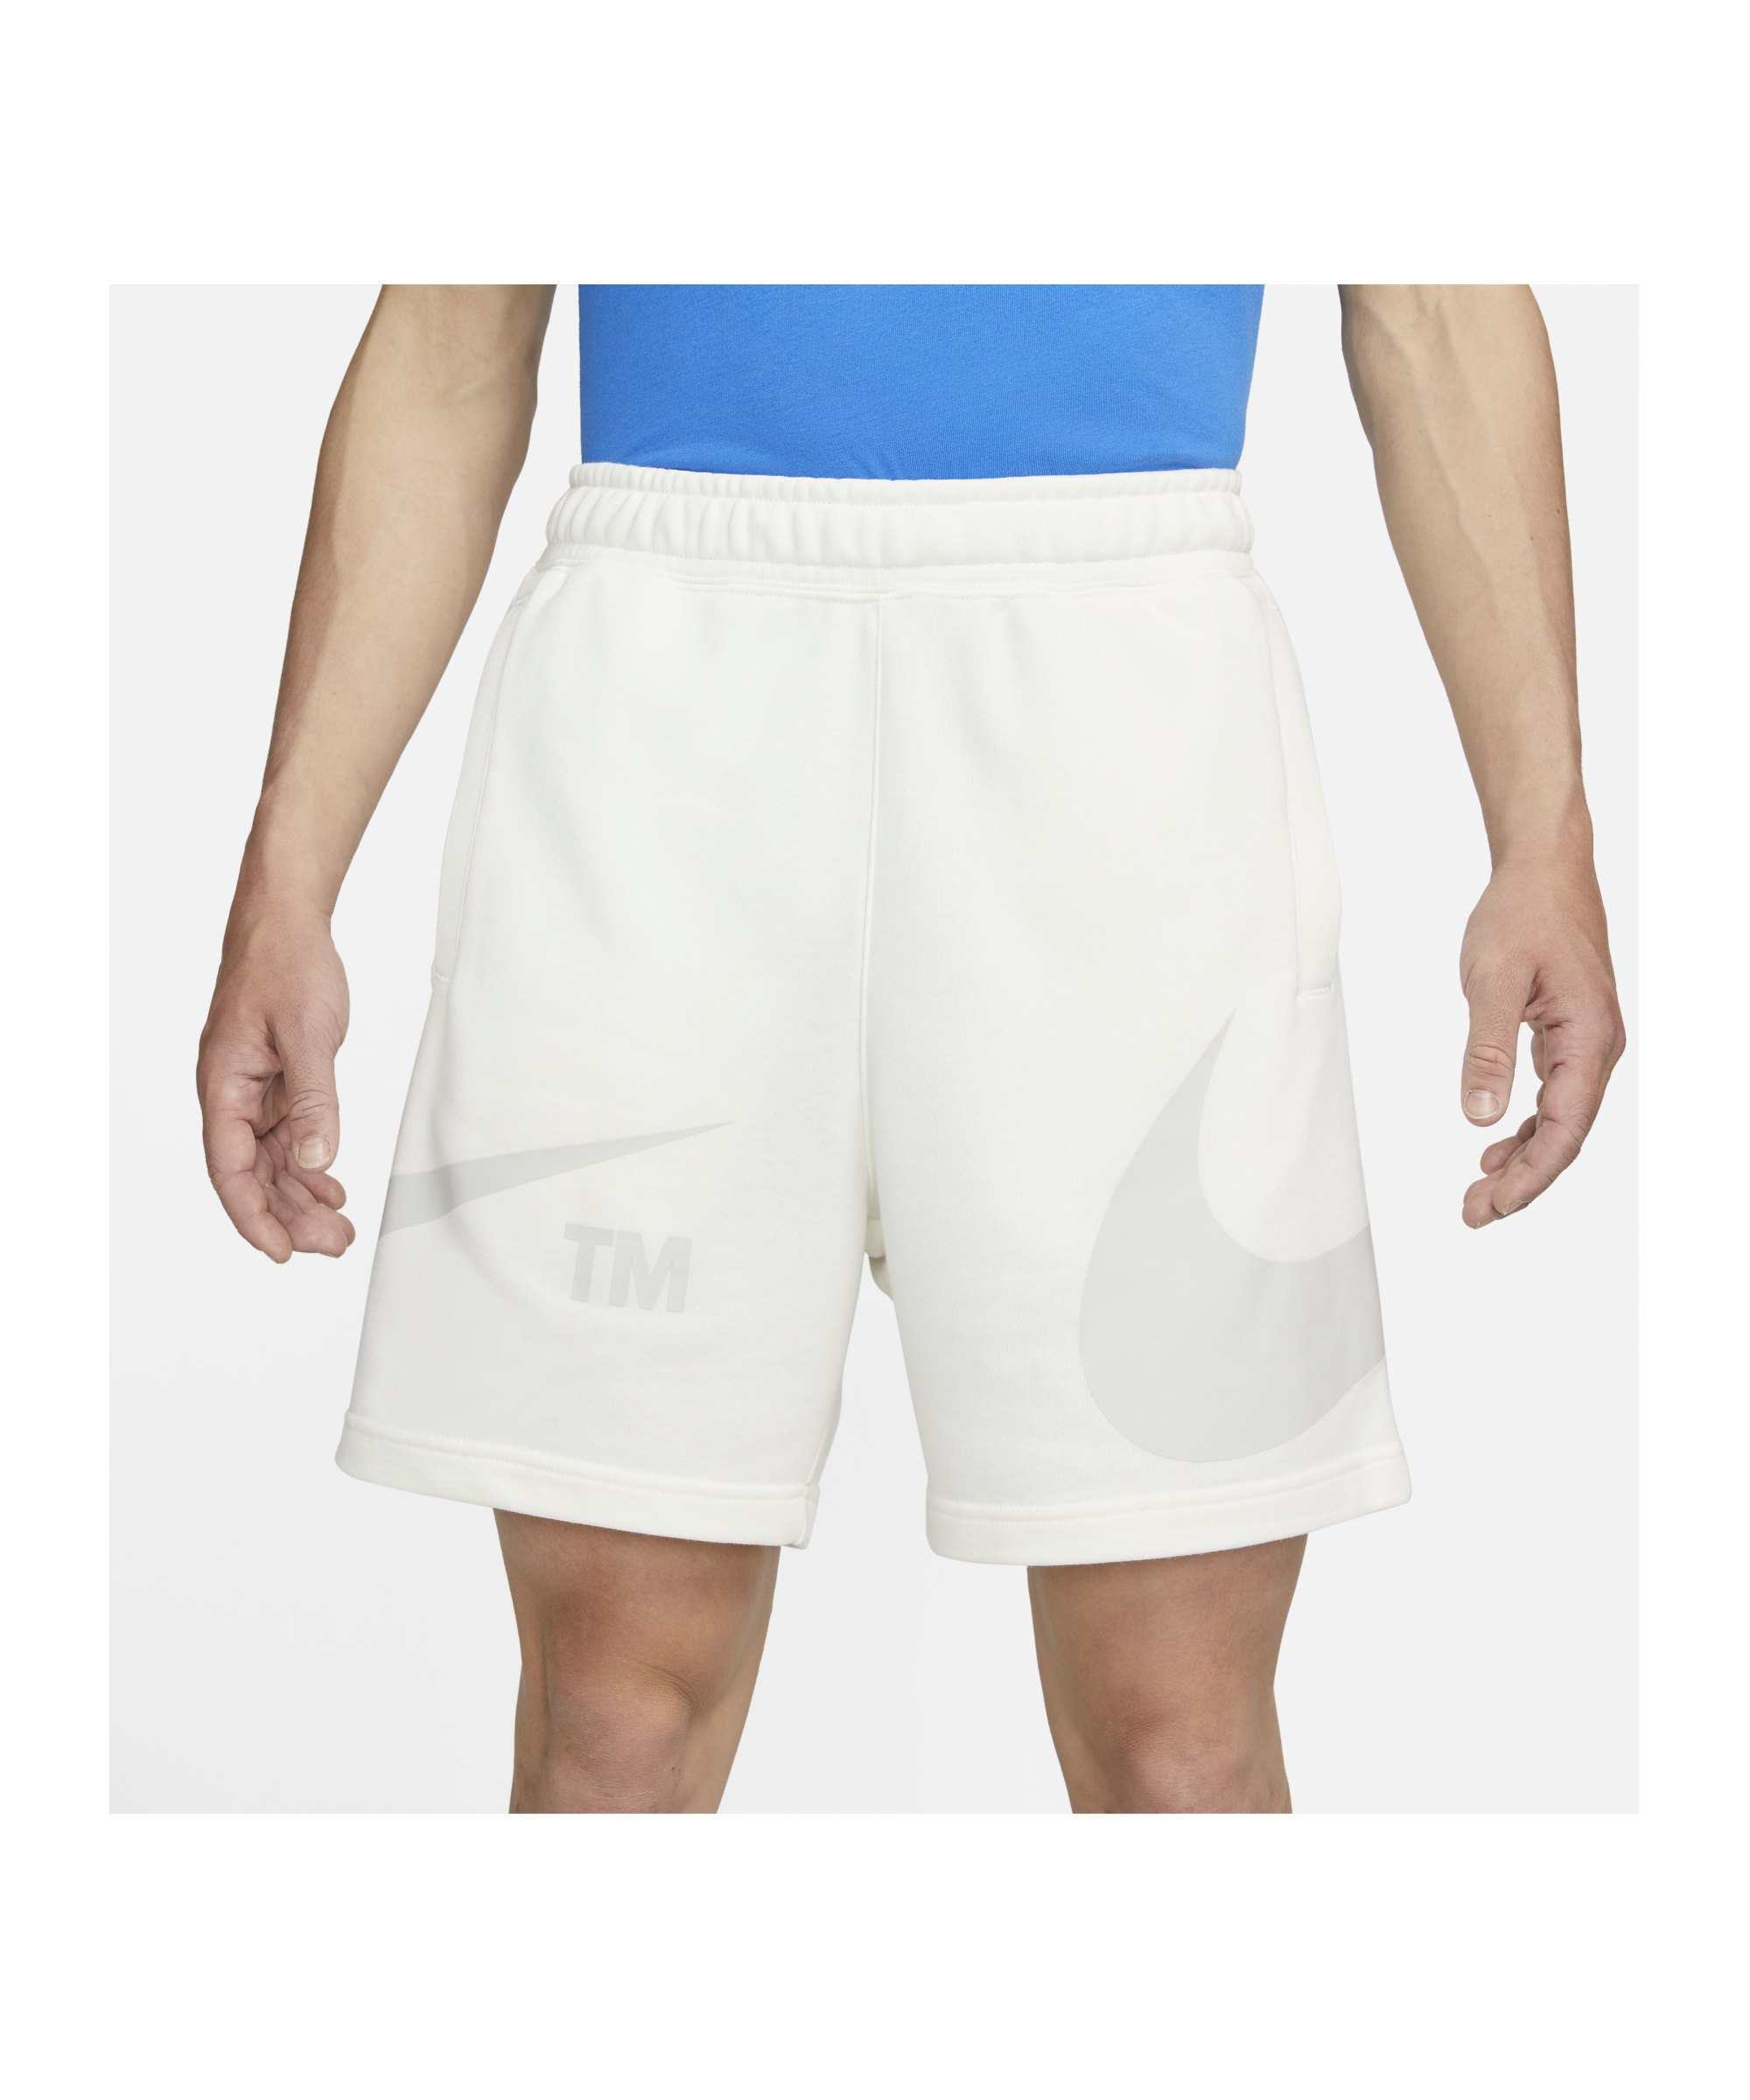 Nike Sport Swoosh French Terry Short Weiss F133 - weiss